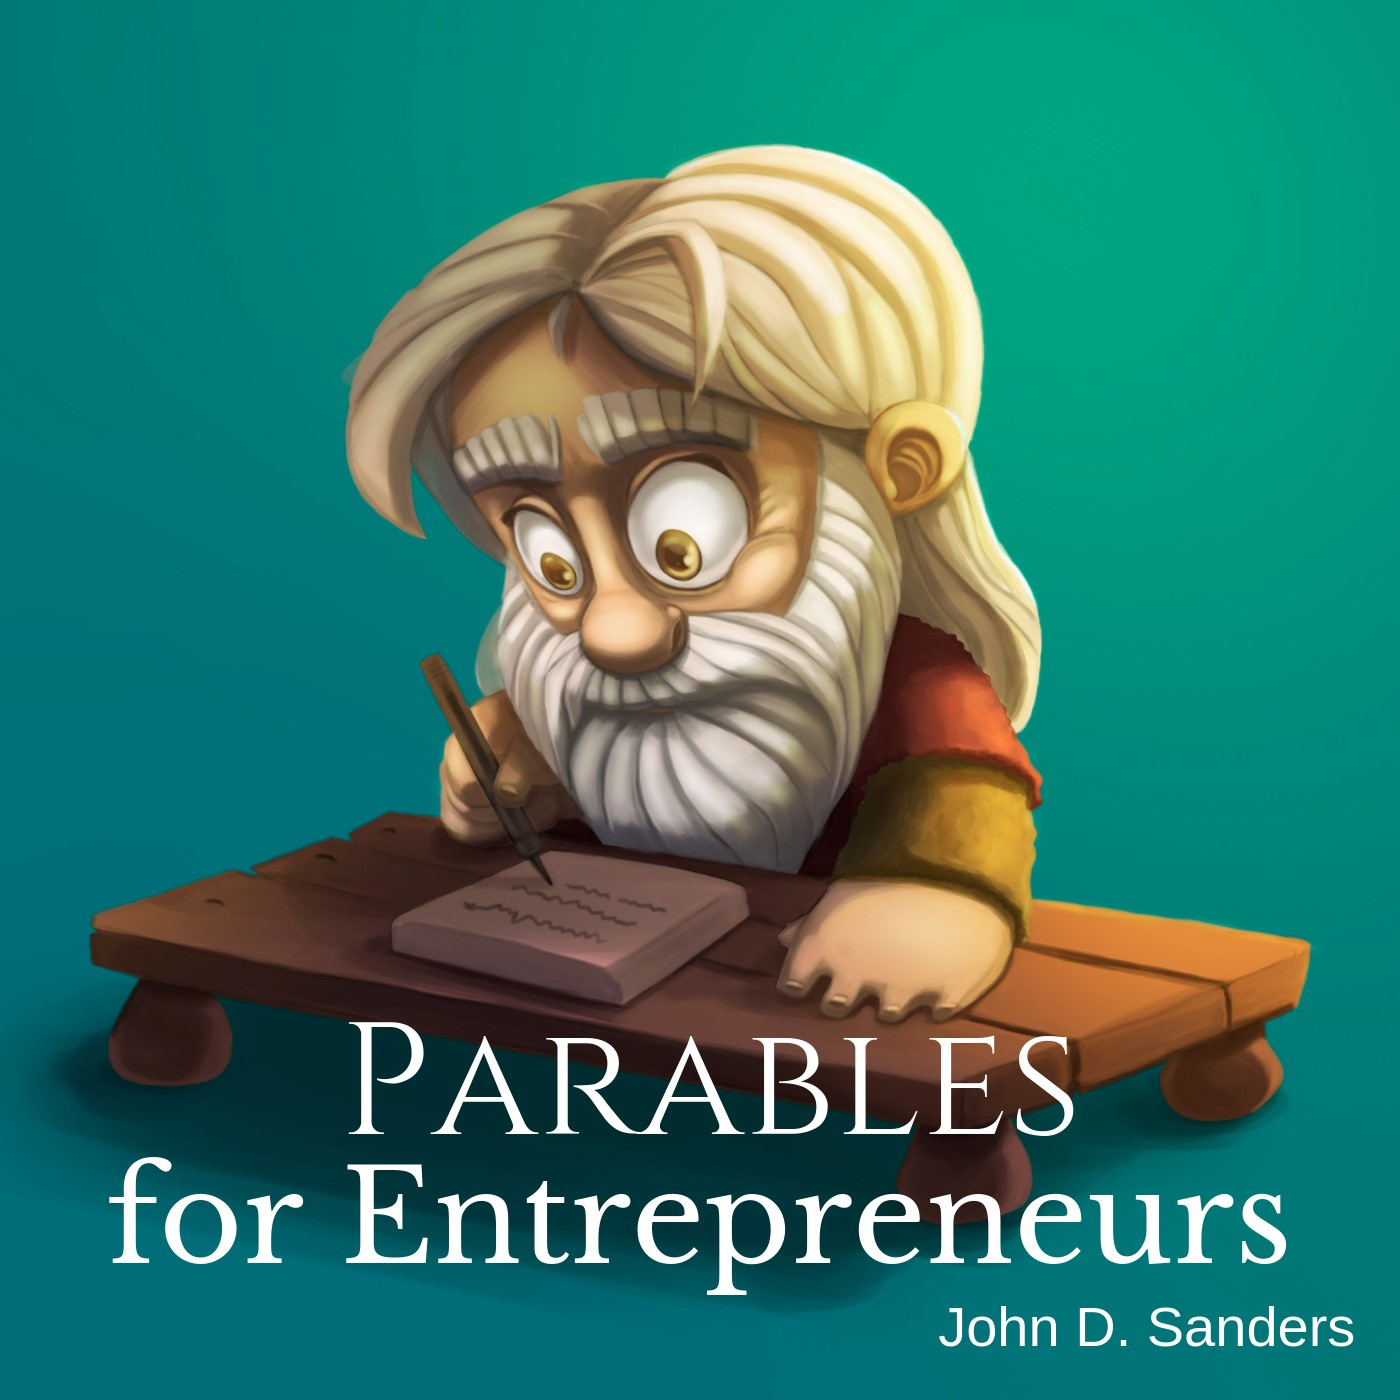 Parables for Entrepreneurs